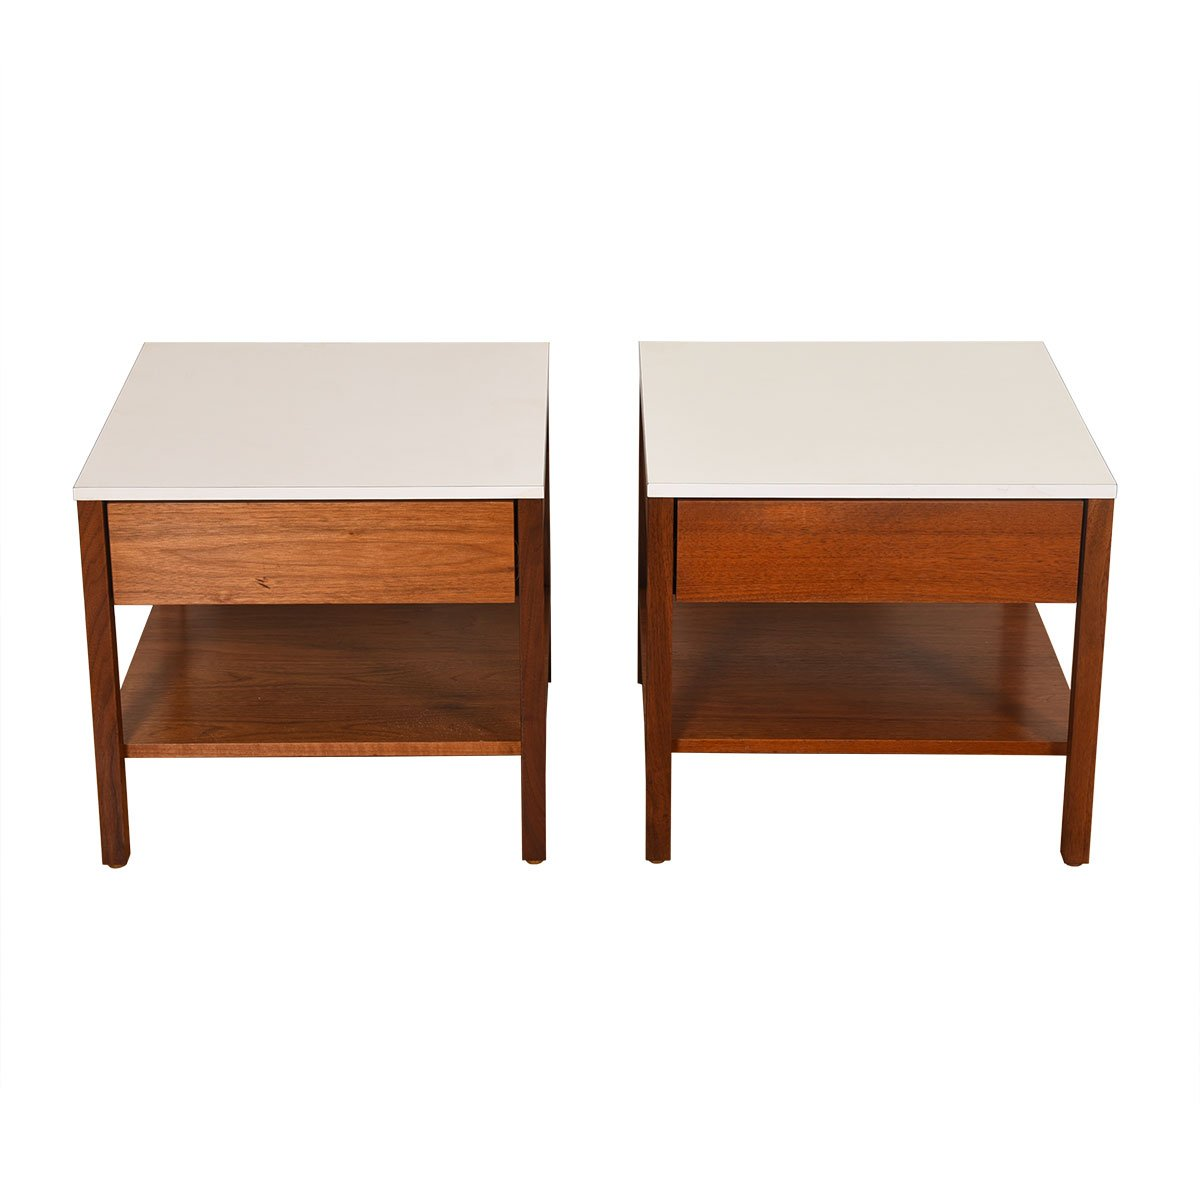 Pair of Mid Century Walnut White Top Nightstands / Side Tables by Knoll